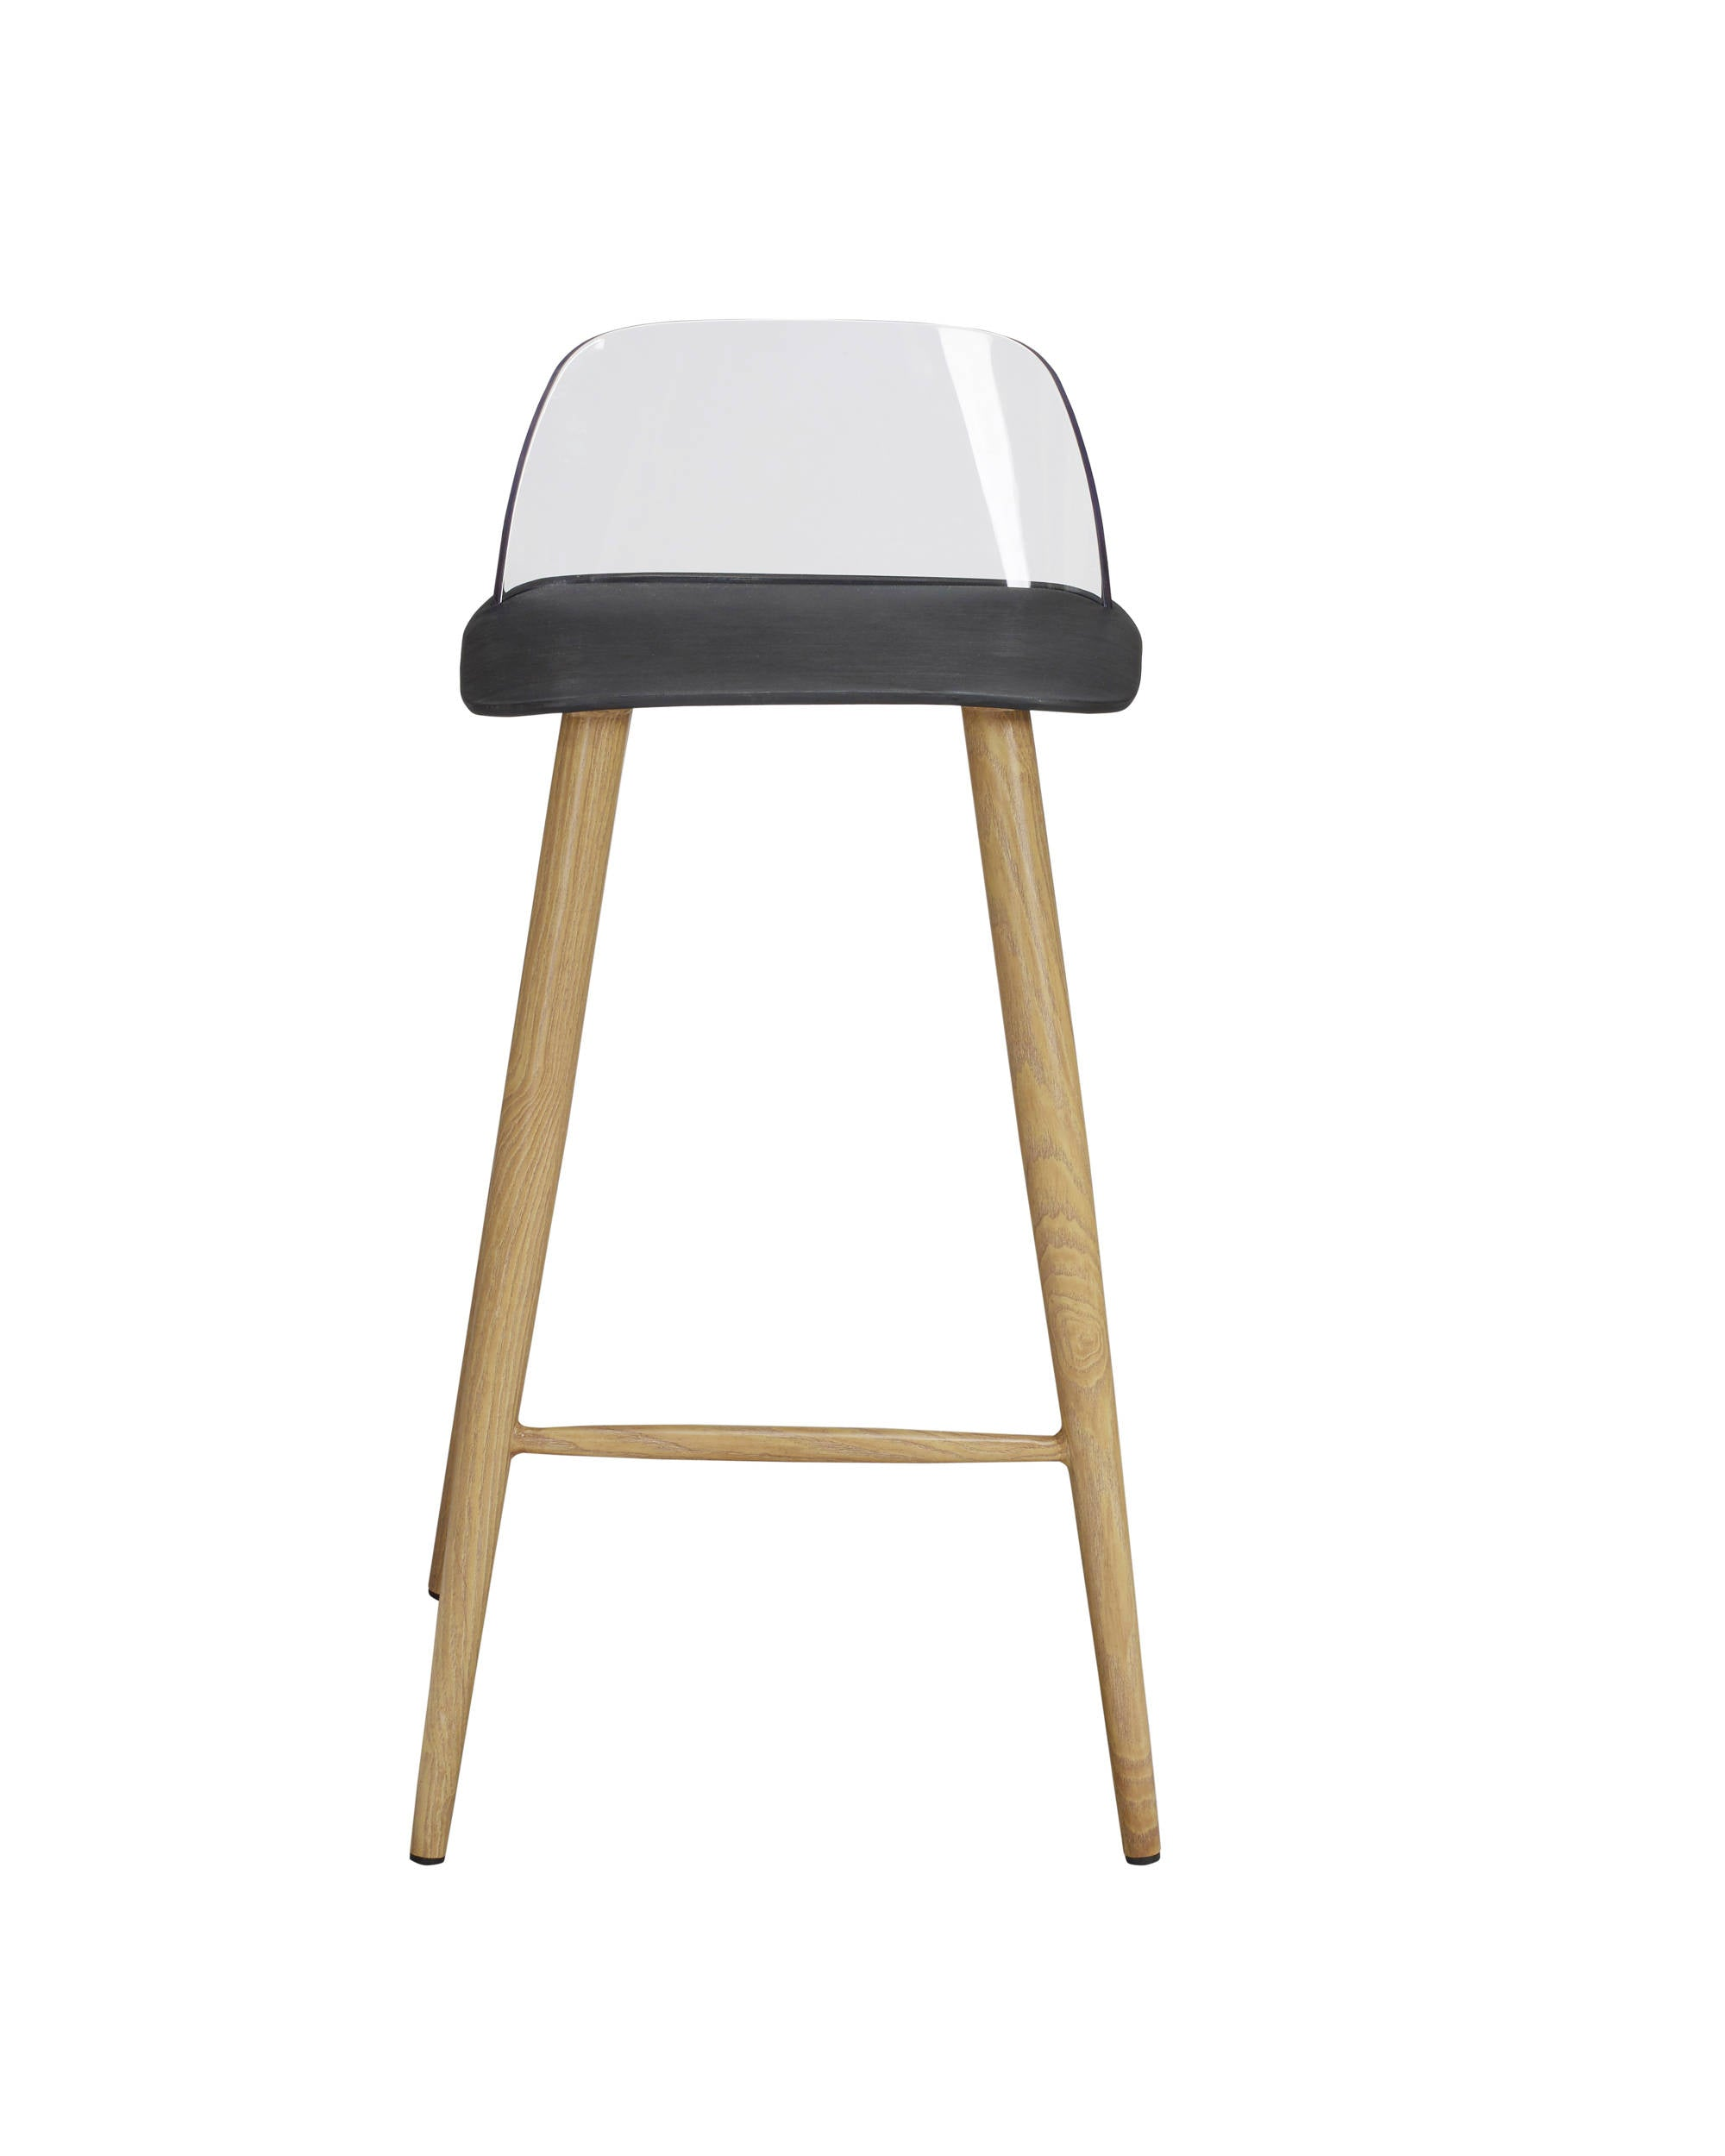 Manresa Stools in Black - Ezzo